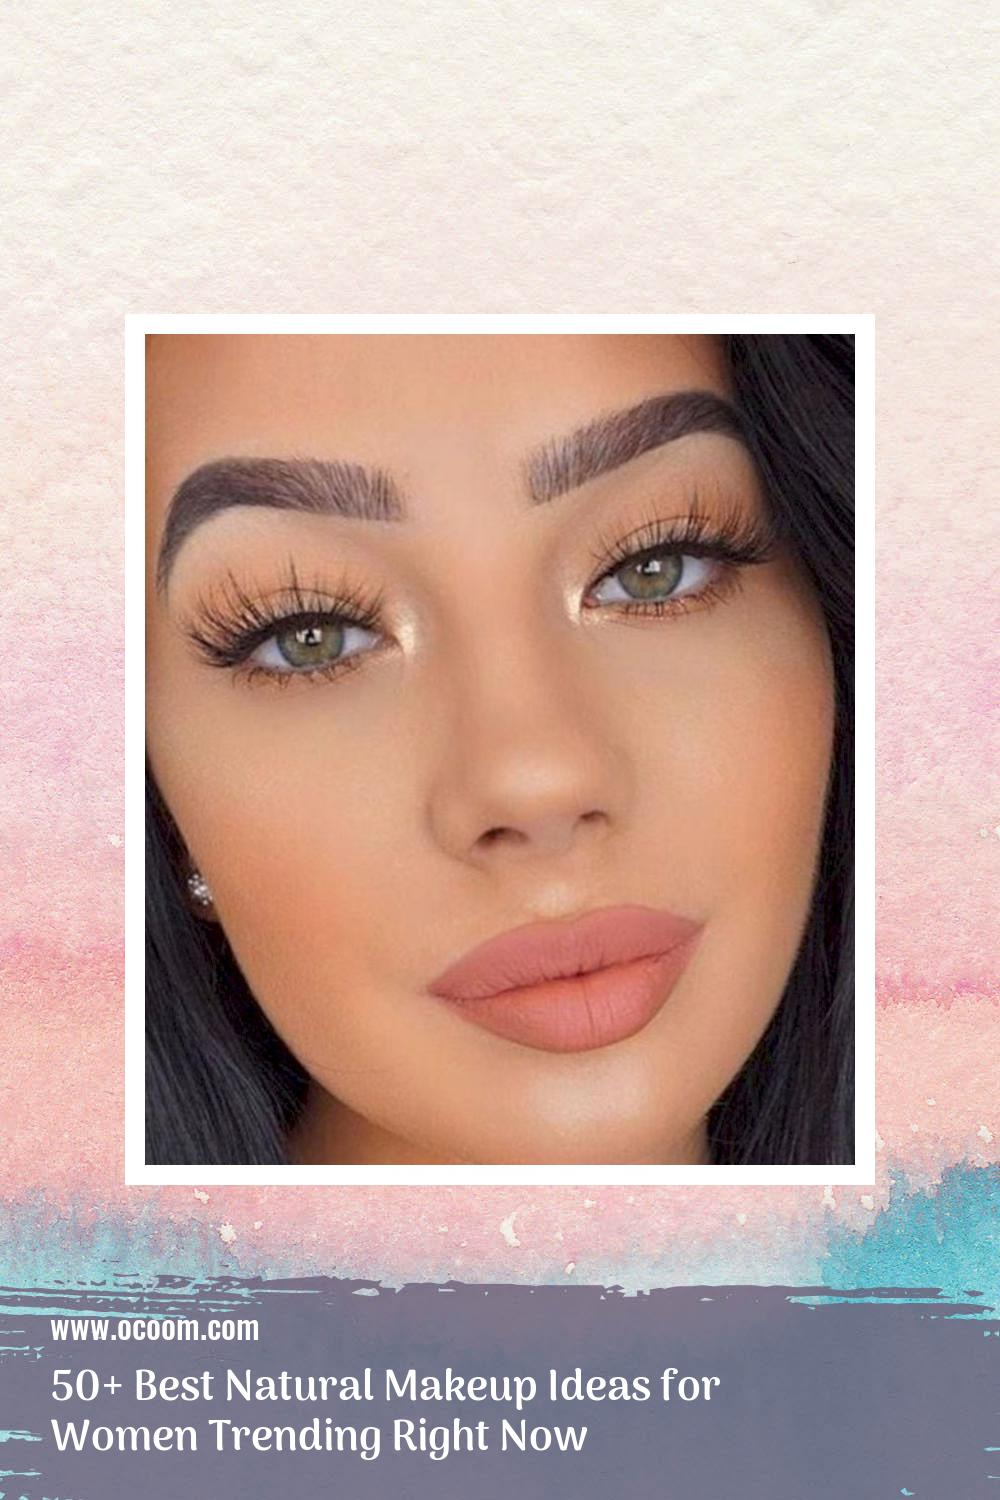 50+ Best Natural Makeup Ideas for Women Trending Right Now 2